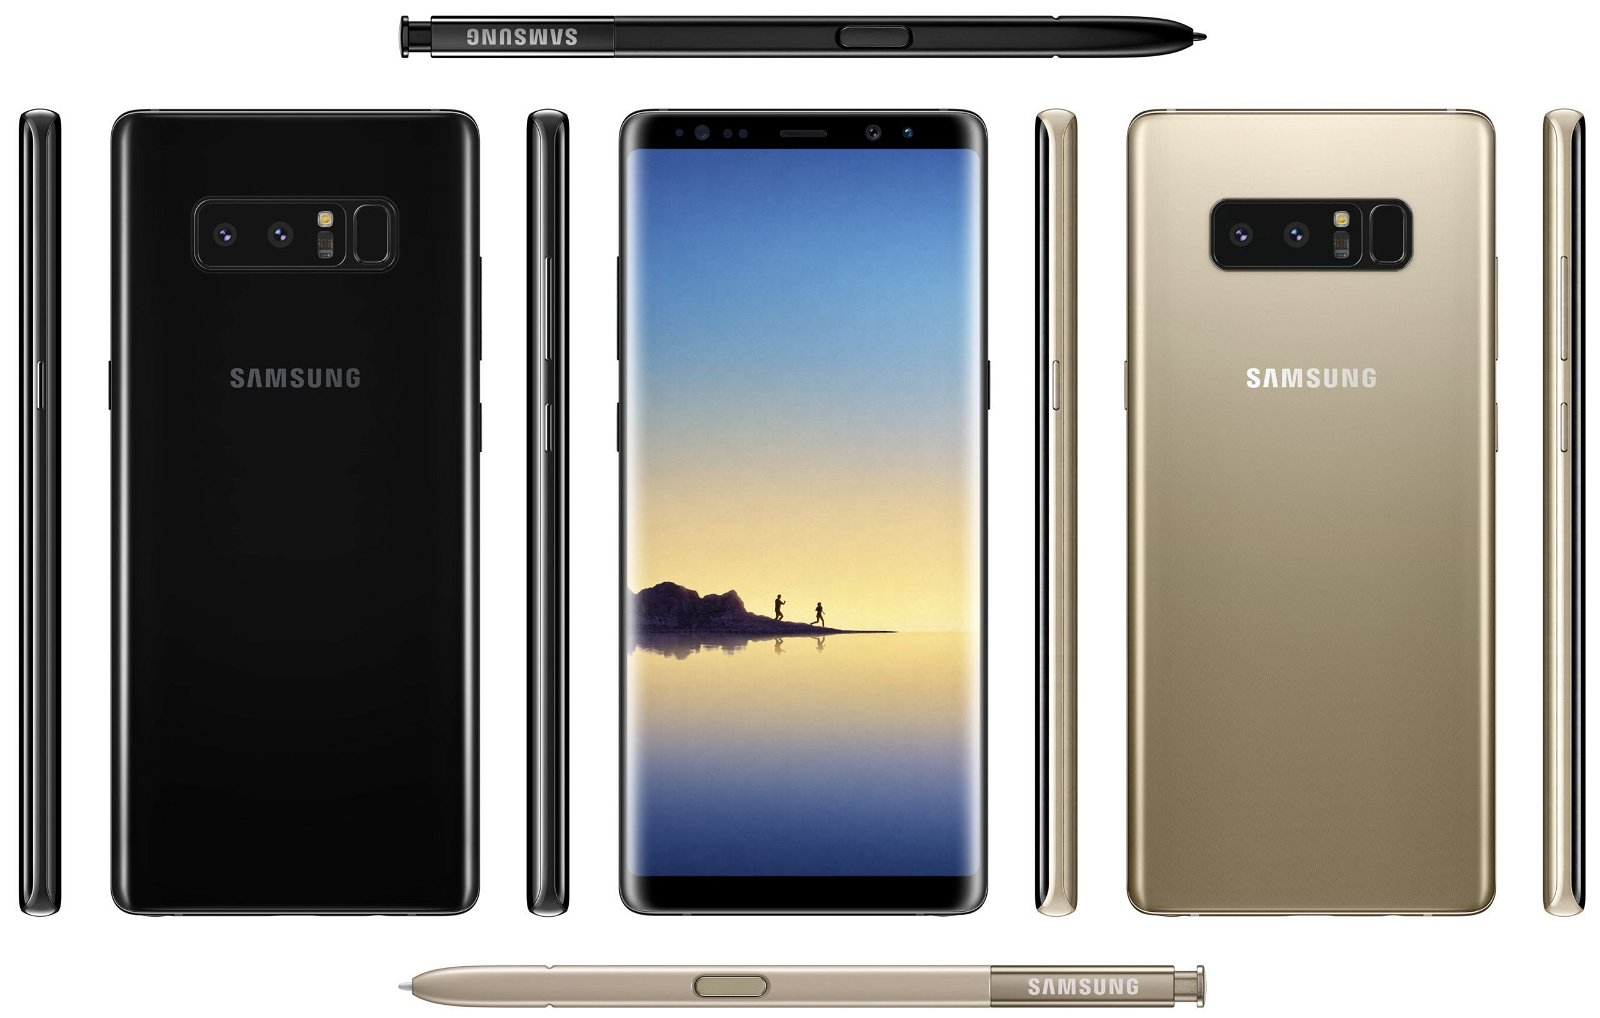 Download Samsung Galaxy Note 8 Wallpapers 2